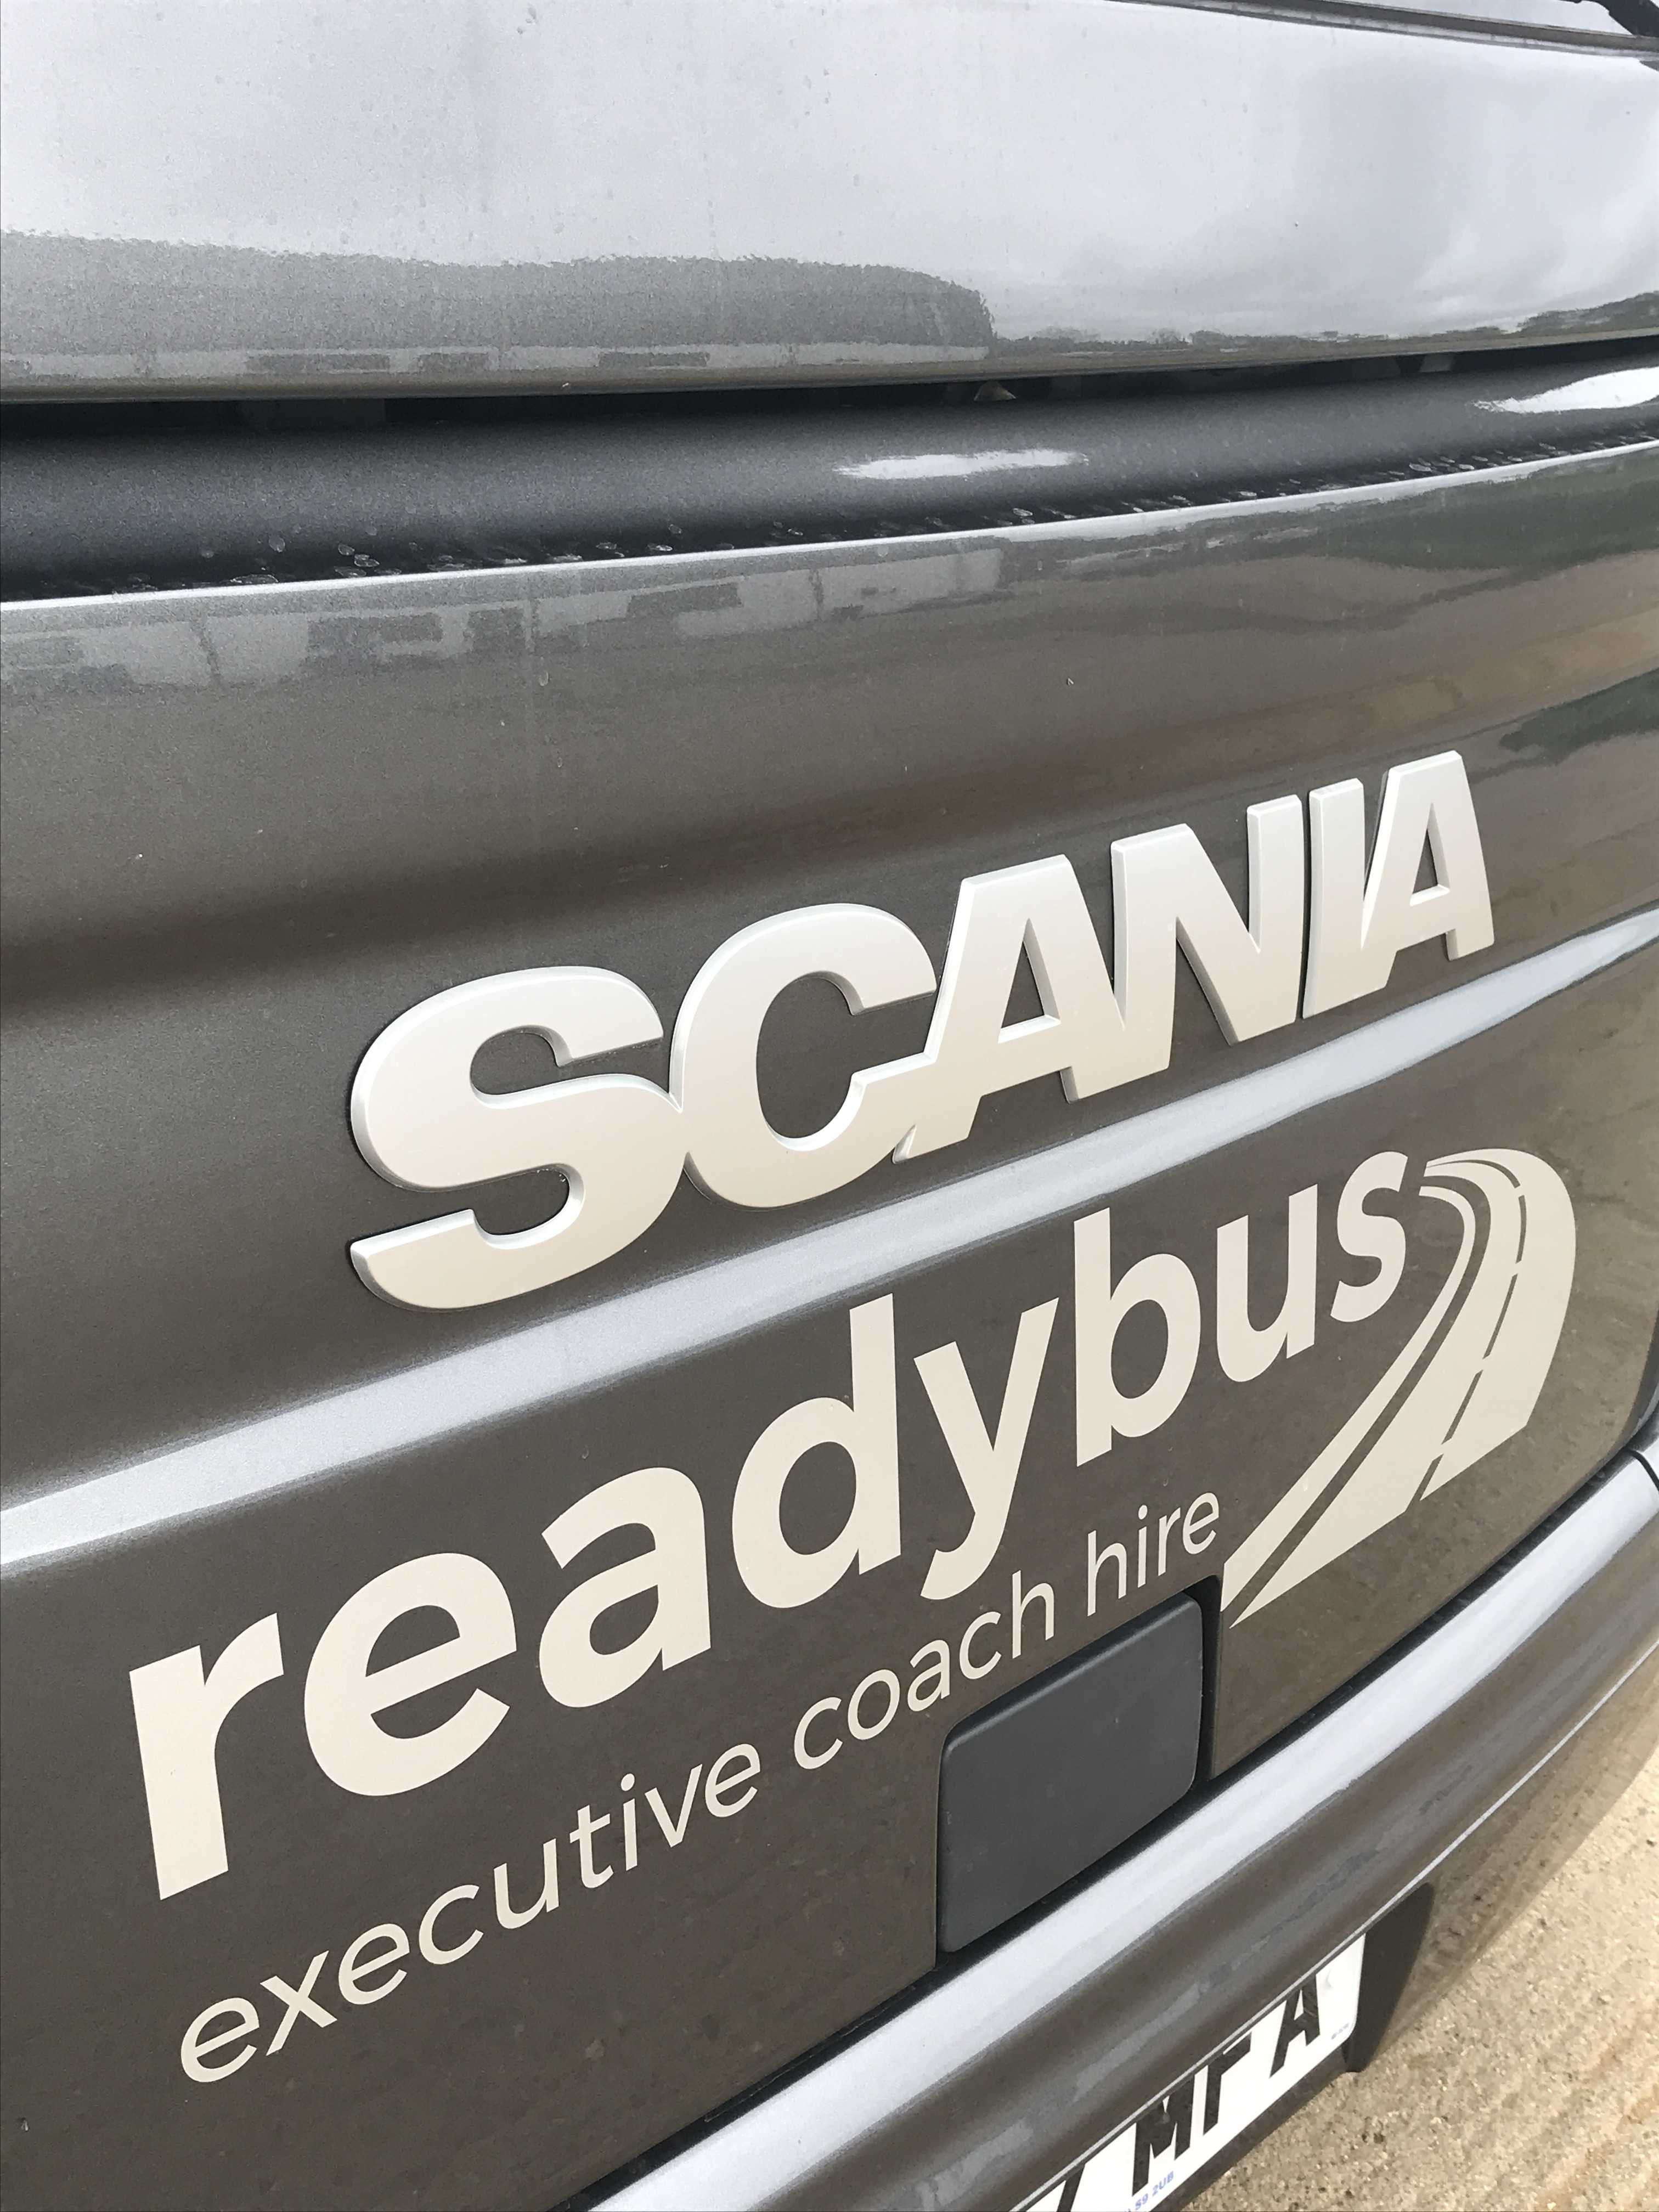 Newest Addition to the Readybus Family